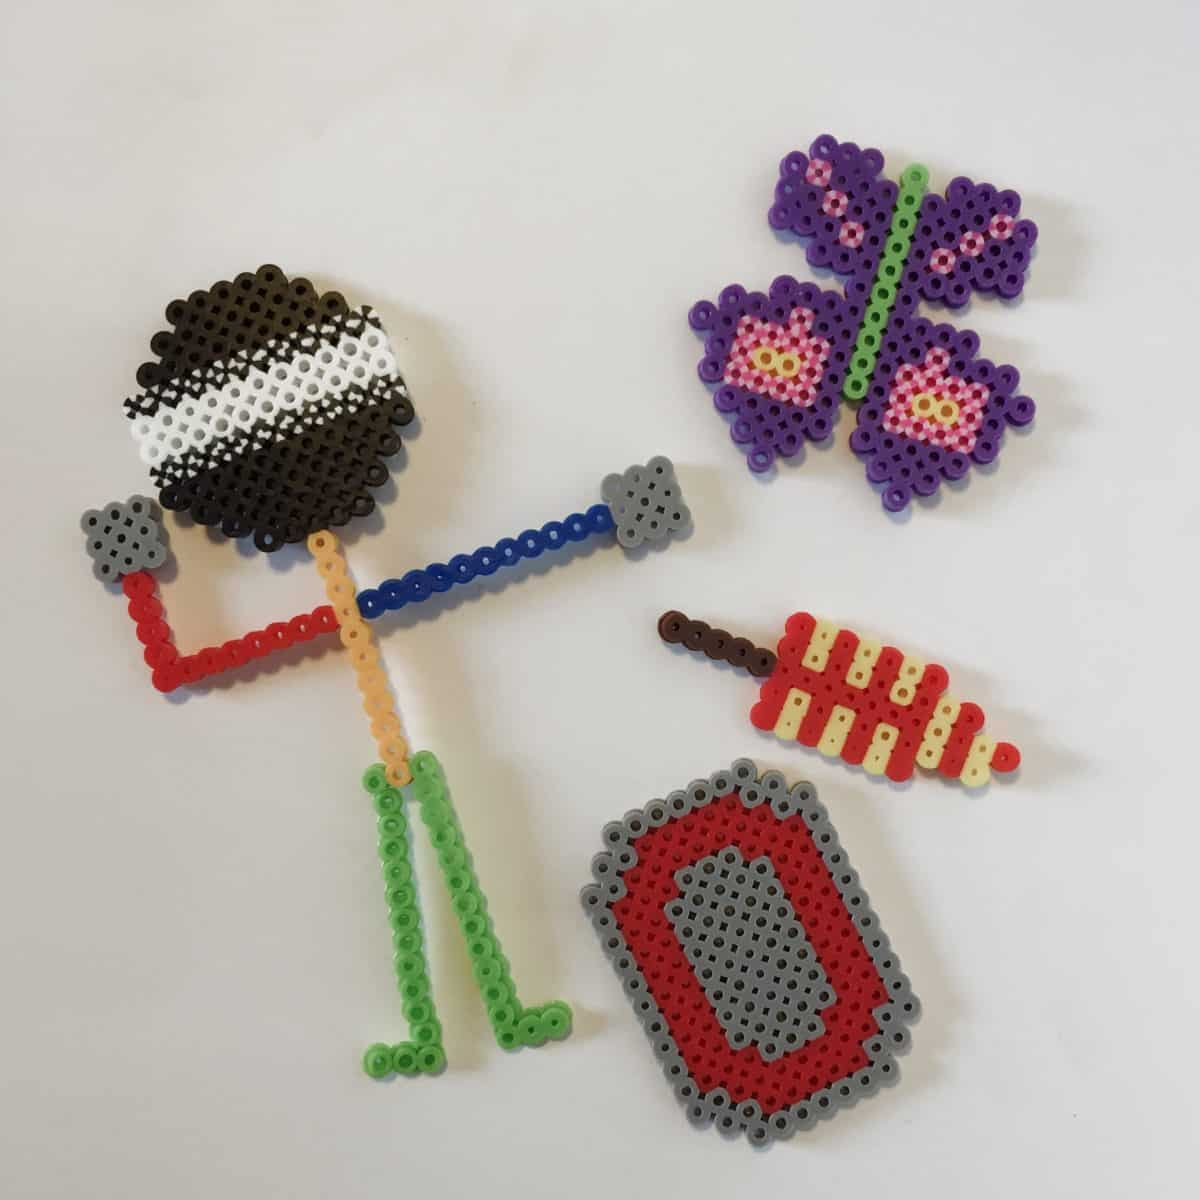 Create you own Perler Bead templates. Simple tutorial for a fun indoor activity.